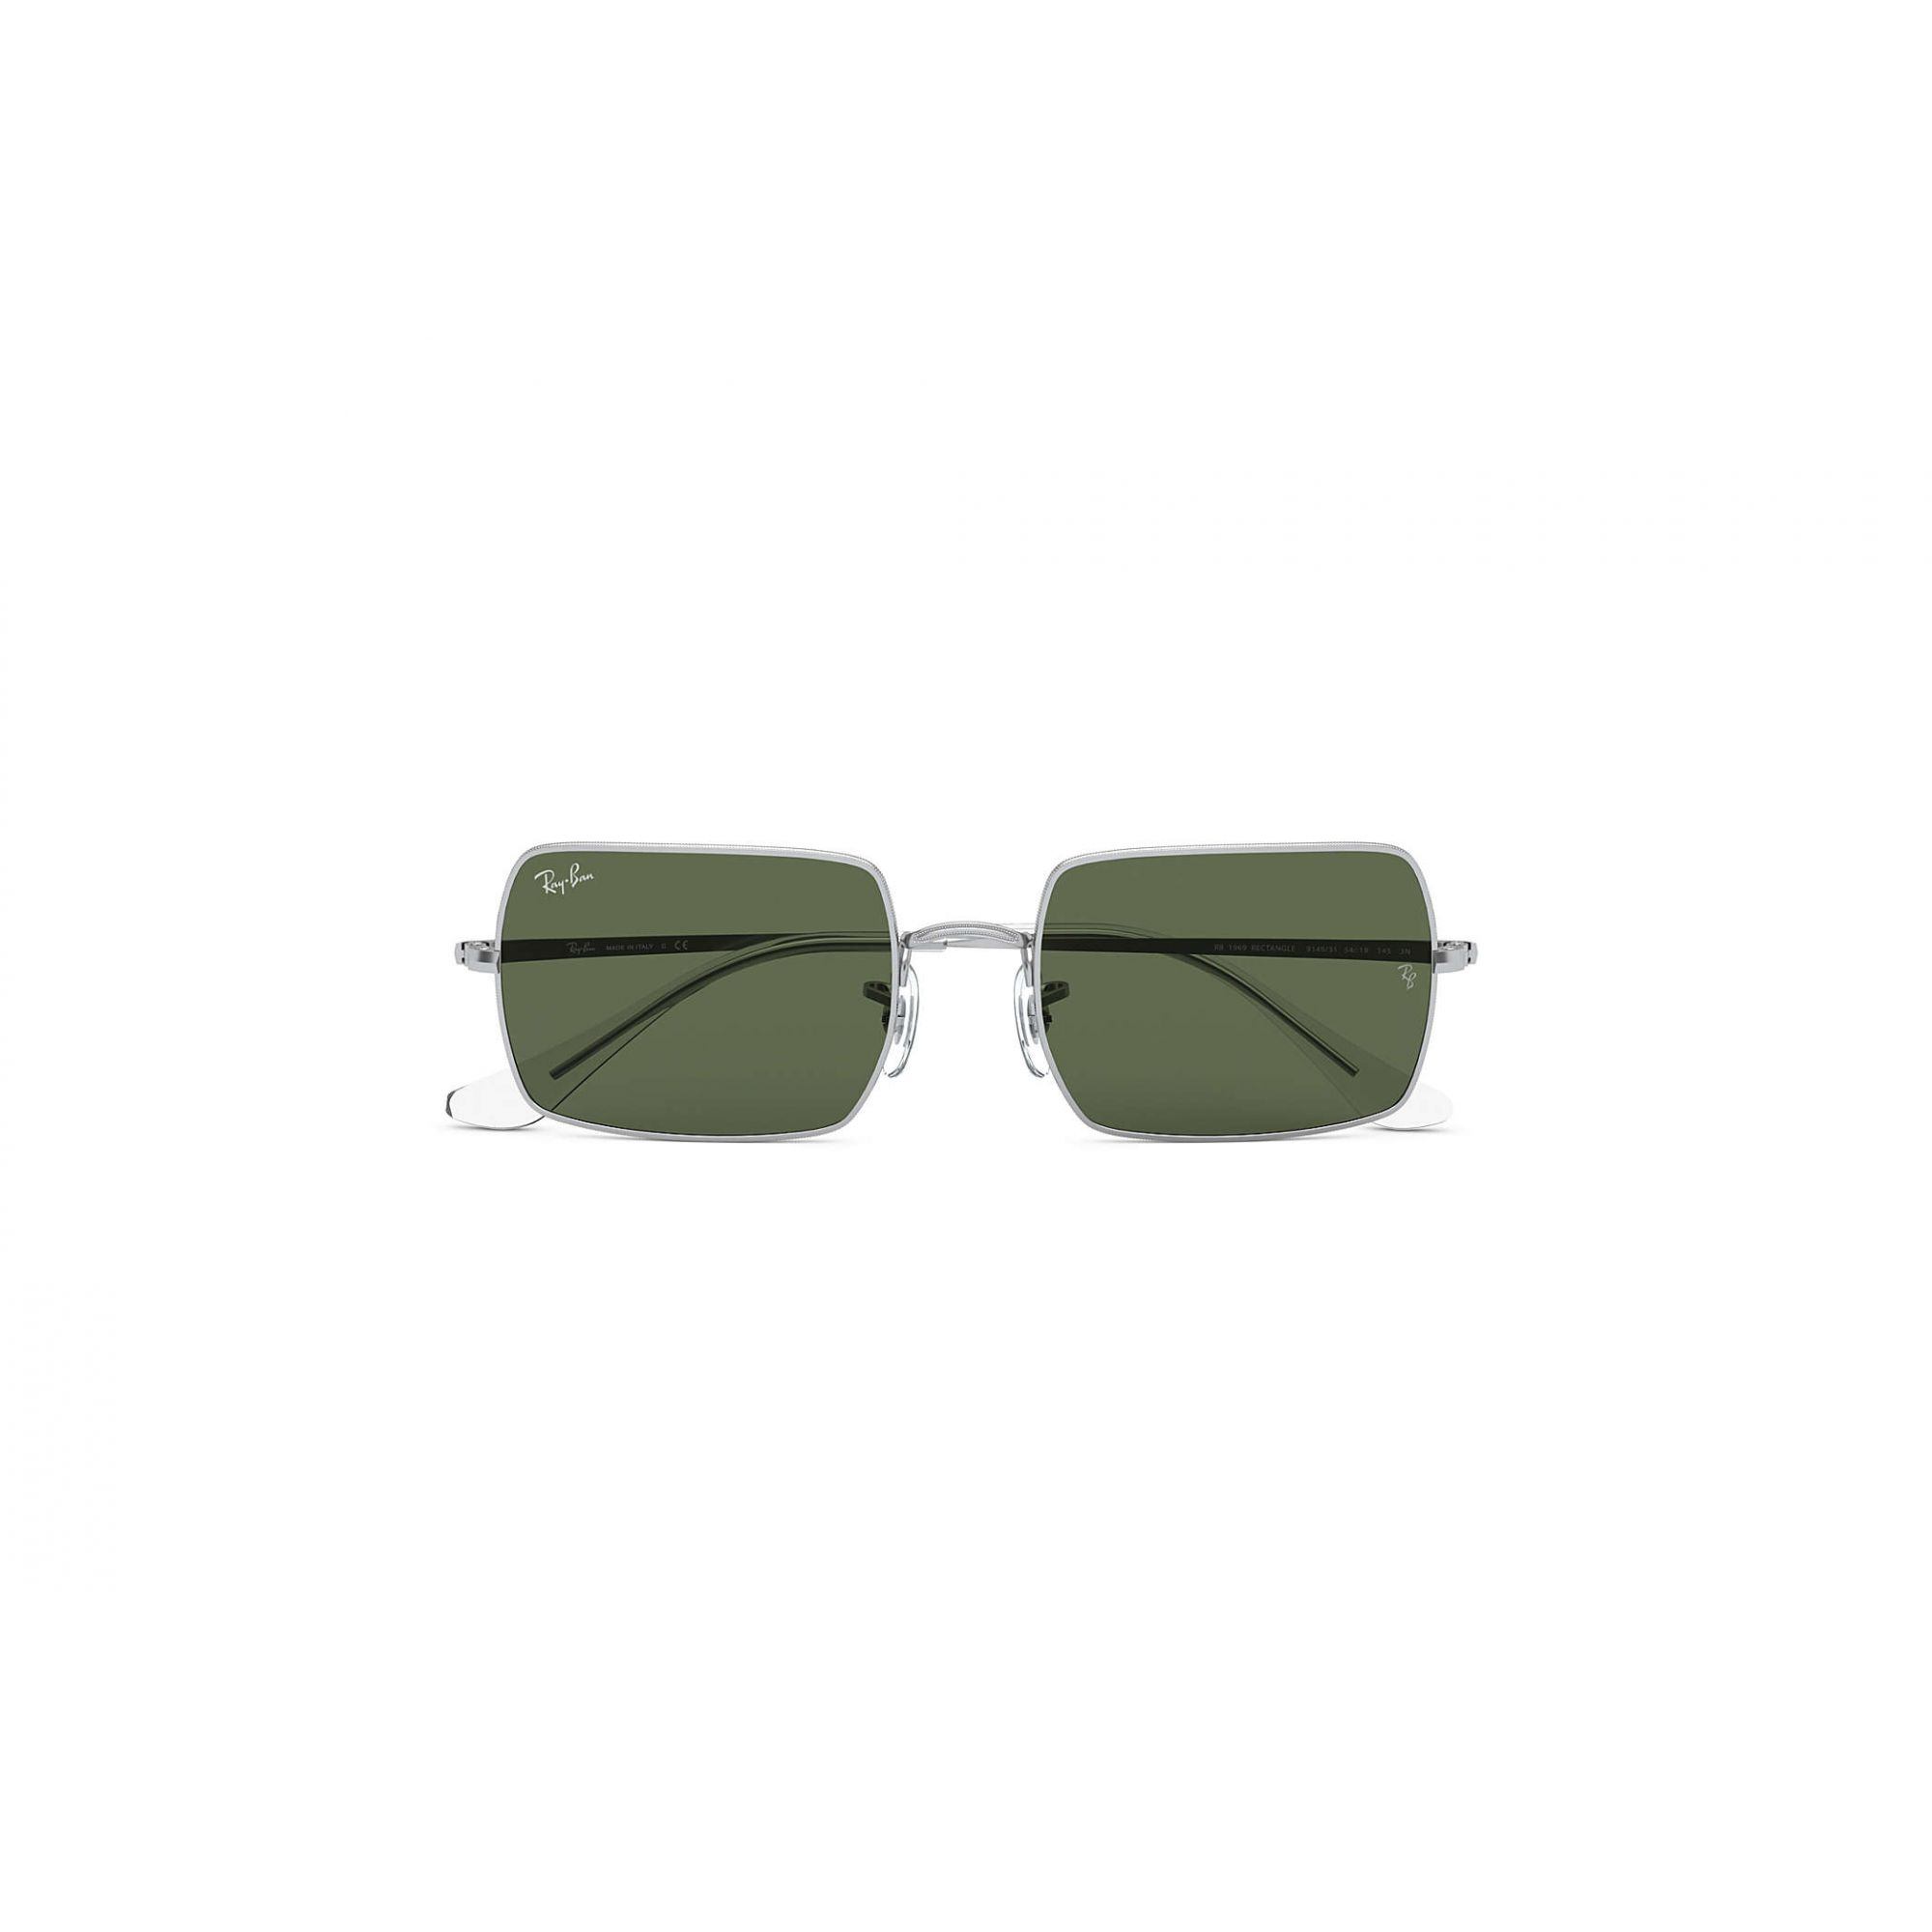 Óculos de Sol Ray-Ban Rectangle Prata